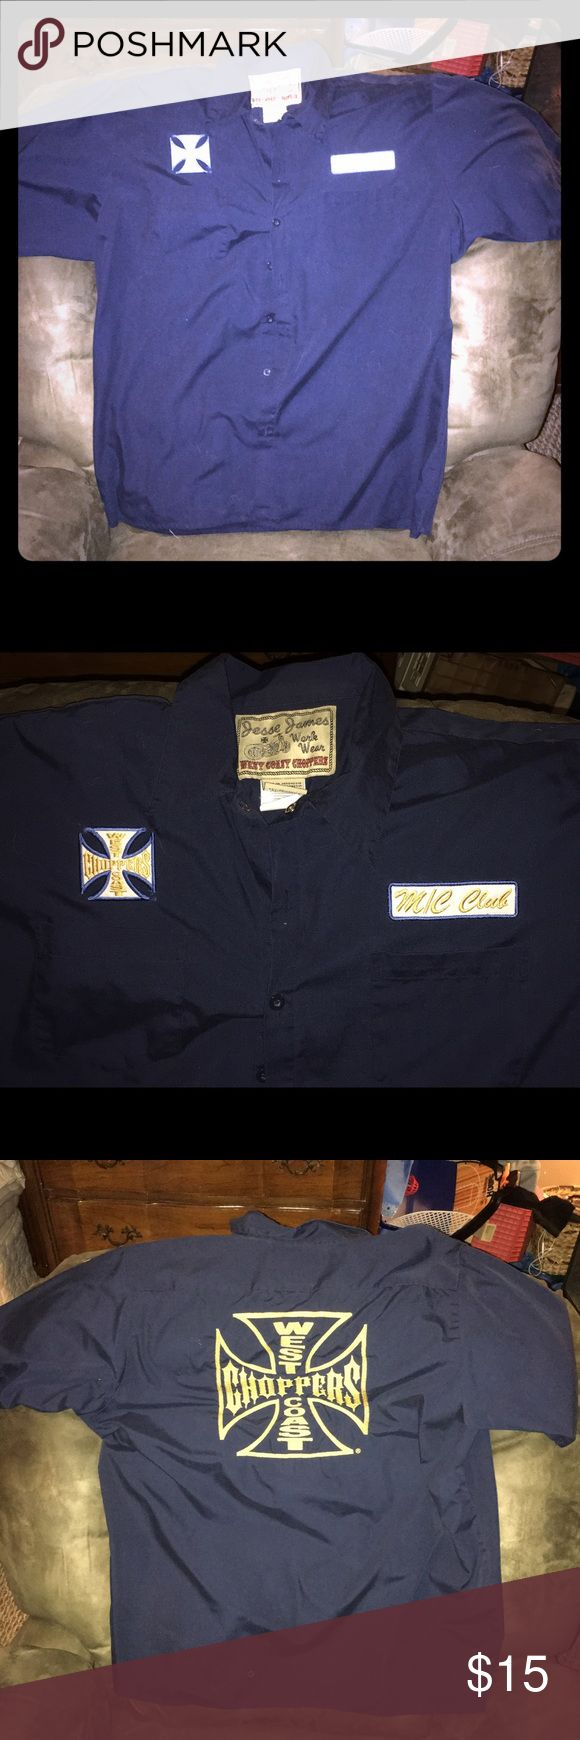 """Vintage West Coast Choppers Work shirt Super Vintage. Worn once if I can remember ever wearing it when the West Coast Choppers """"Craze"""" hit the market. No rips, holes, or Stains. Comes from a pet free and smoke free environment. Shirts Casual Button Down Shirts"""